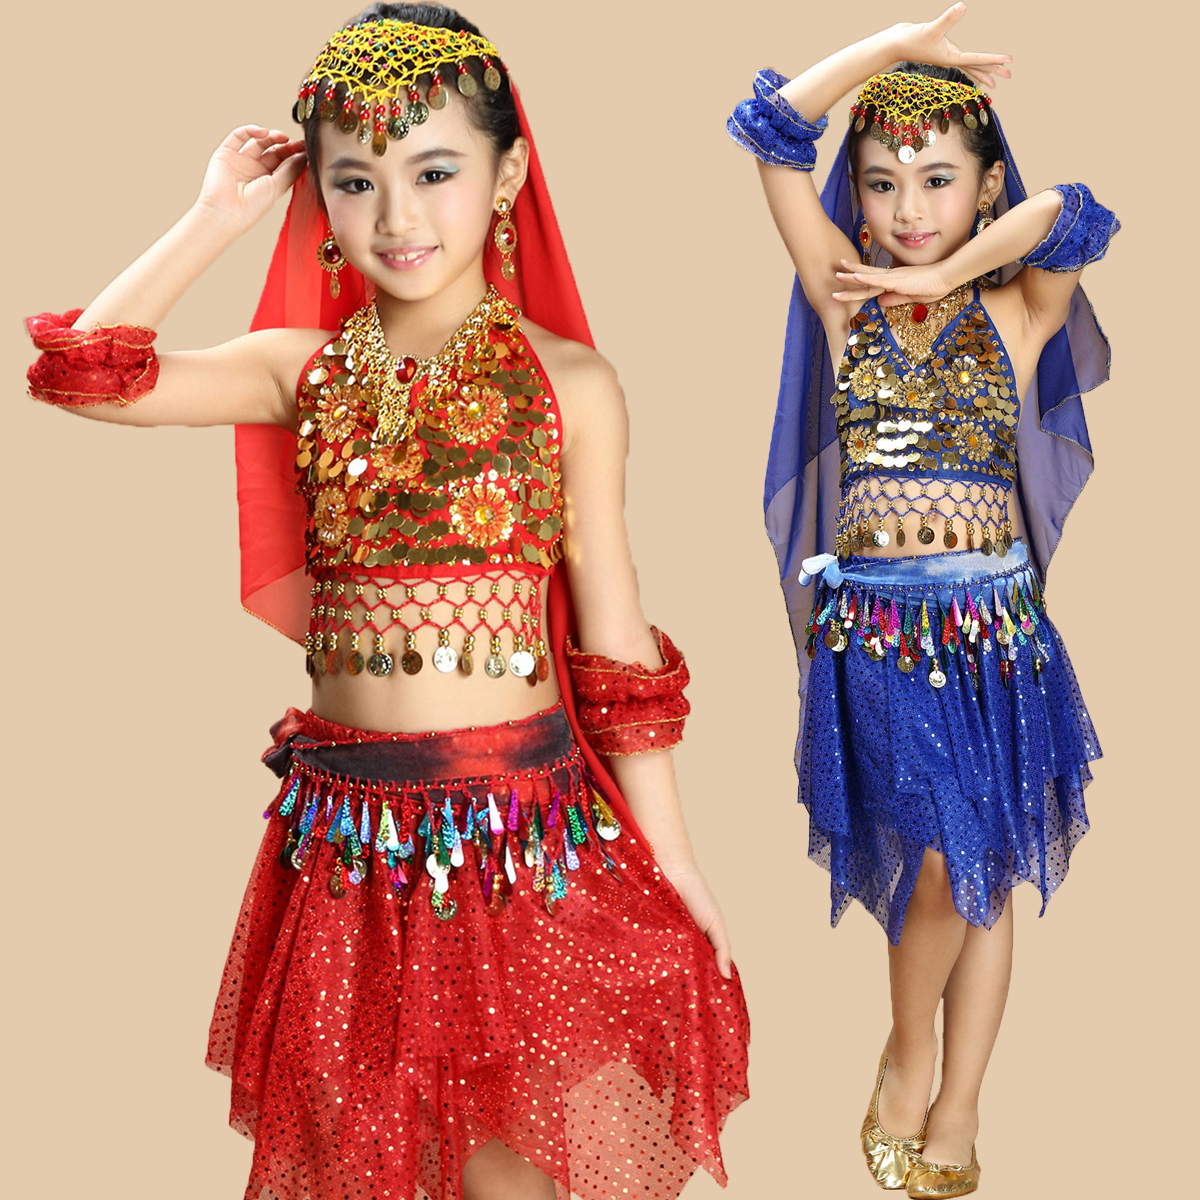 compare prices on sari costumes for kids online shopping buy low